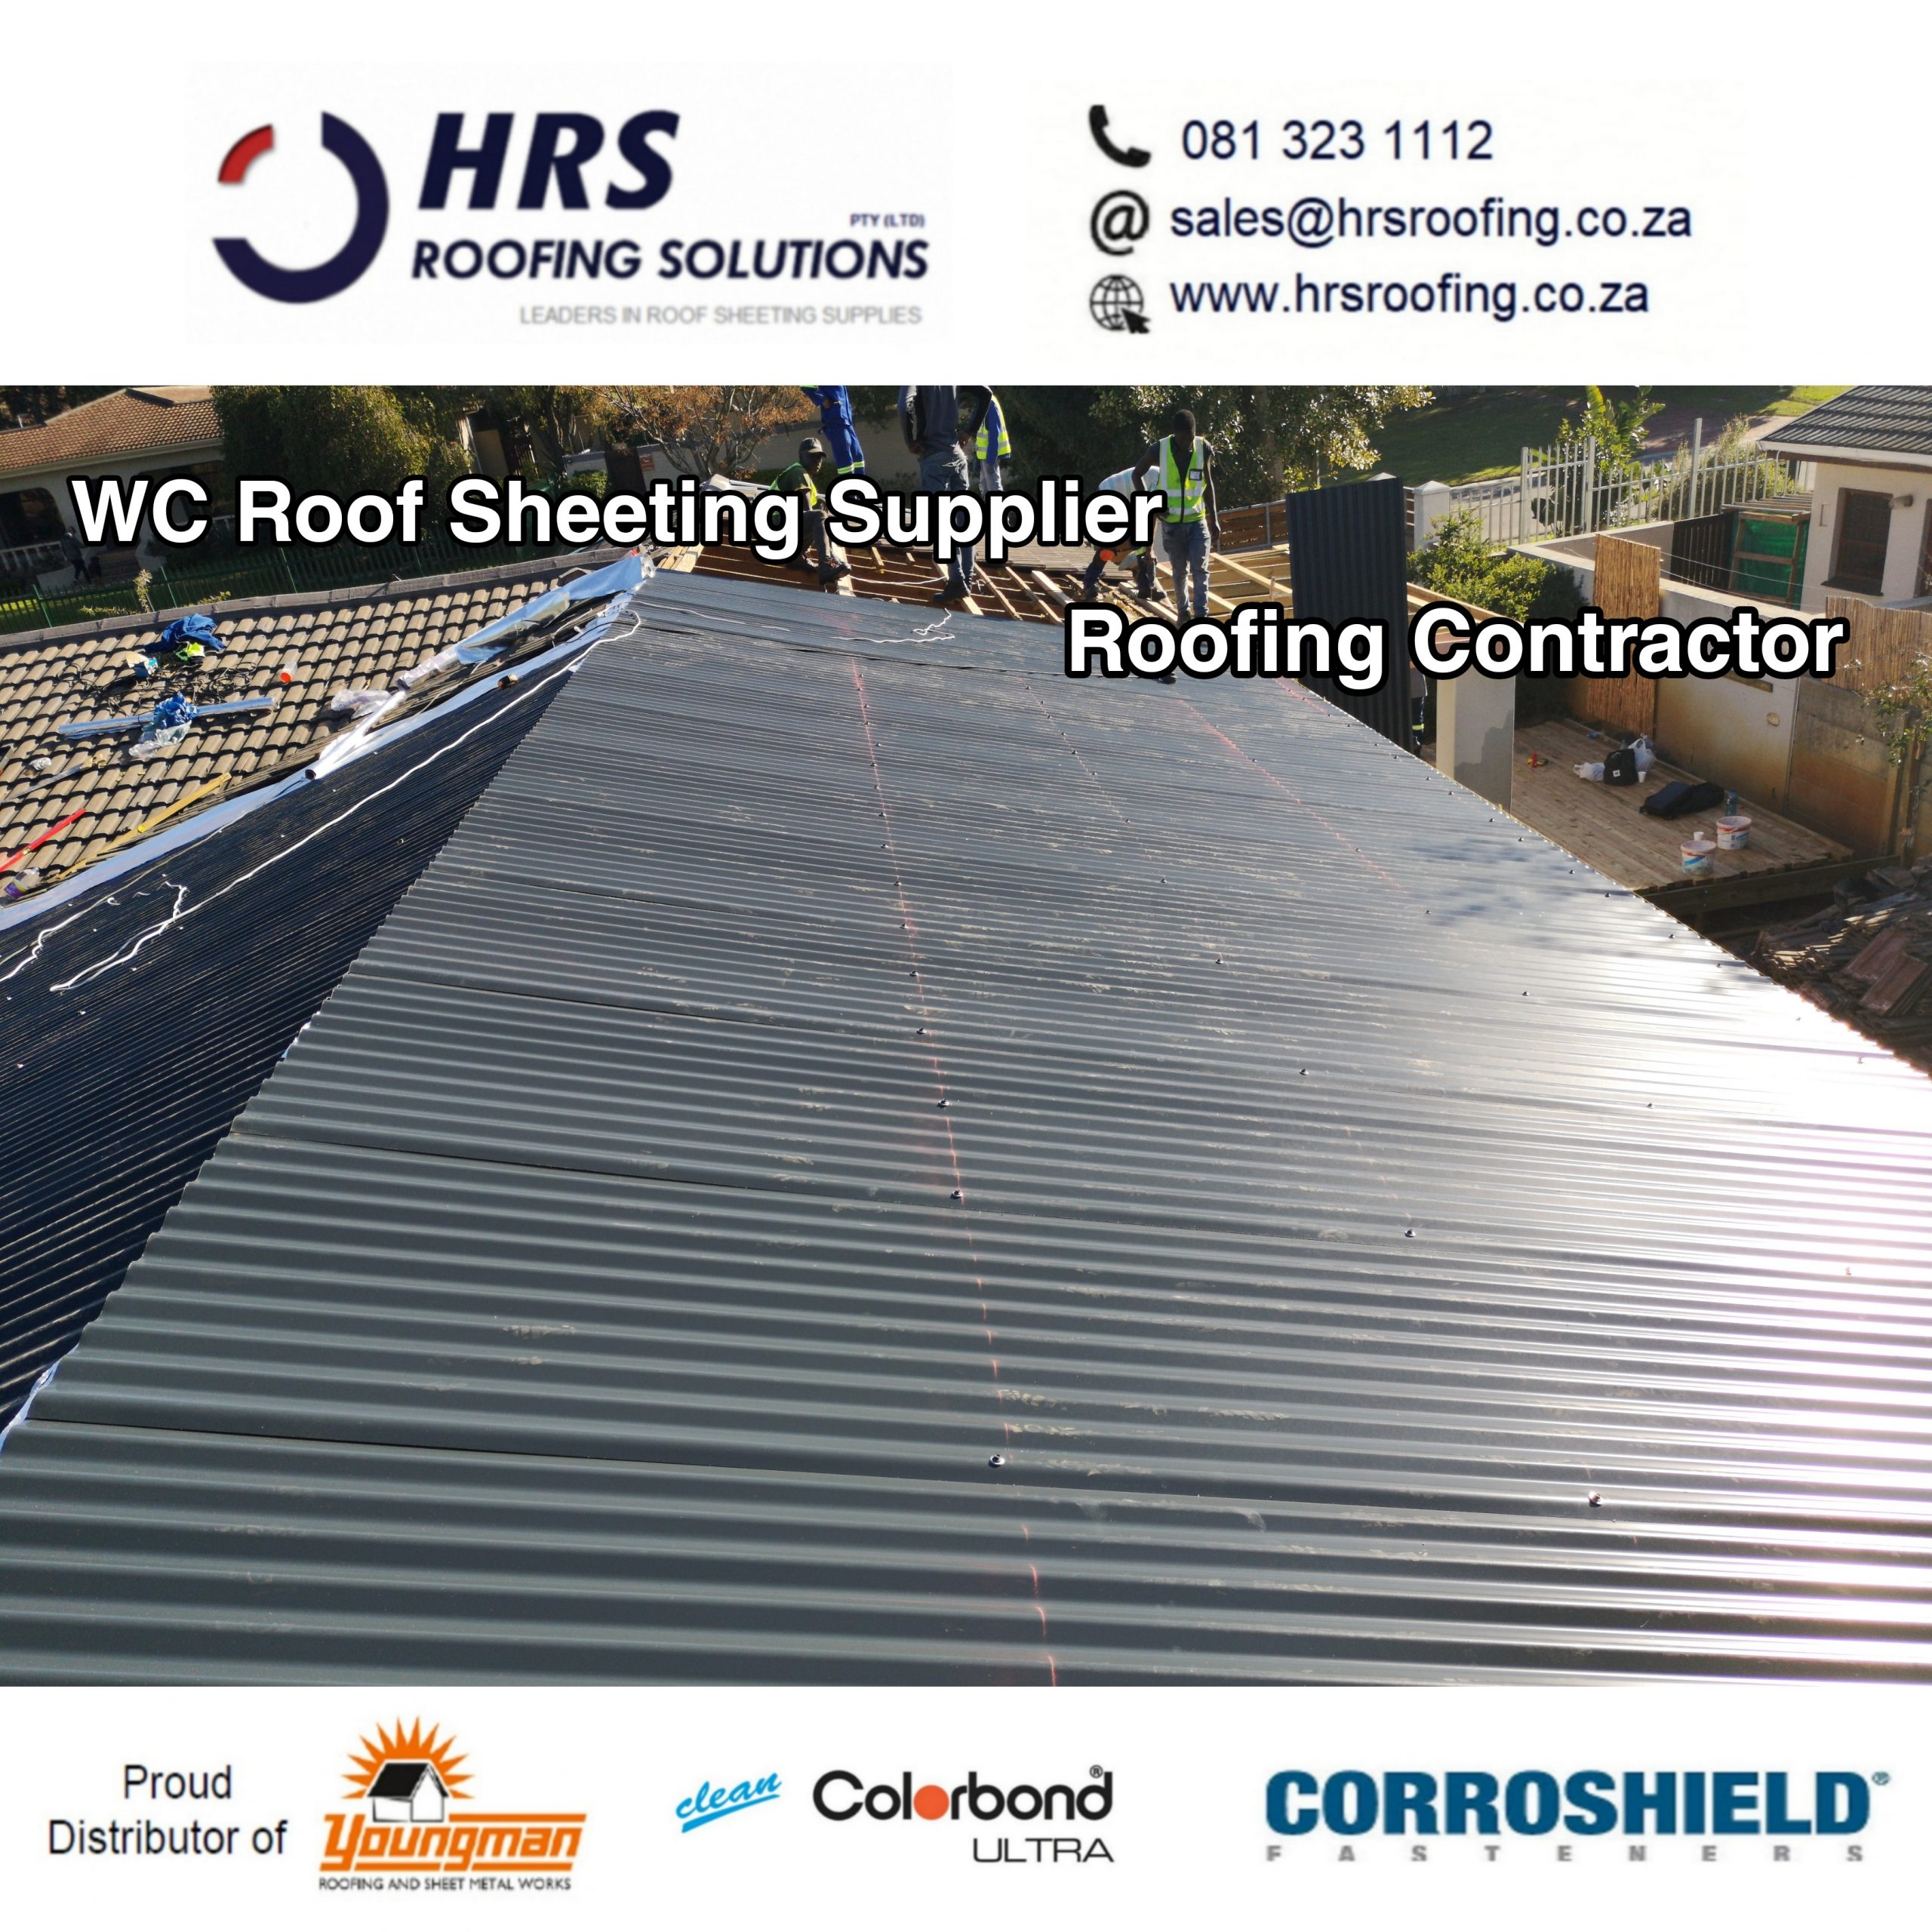 HRS ROOFING ibr corrugated springlok 700 clip lock colorbond roof sheeting supplie scaled - Roofing Gallery